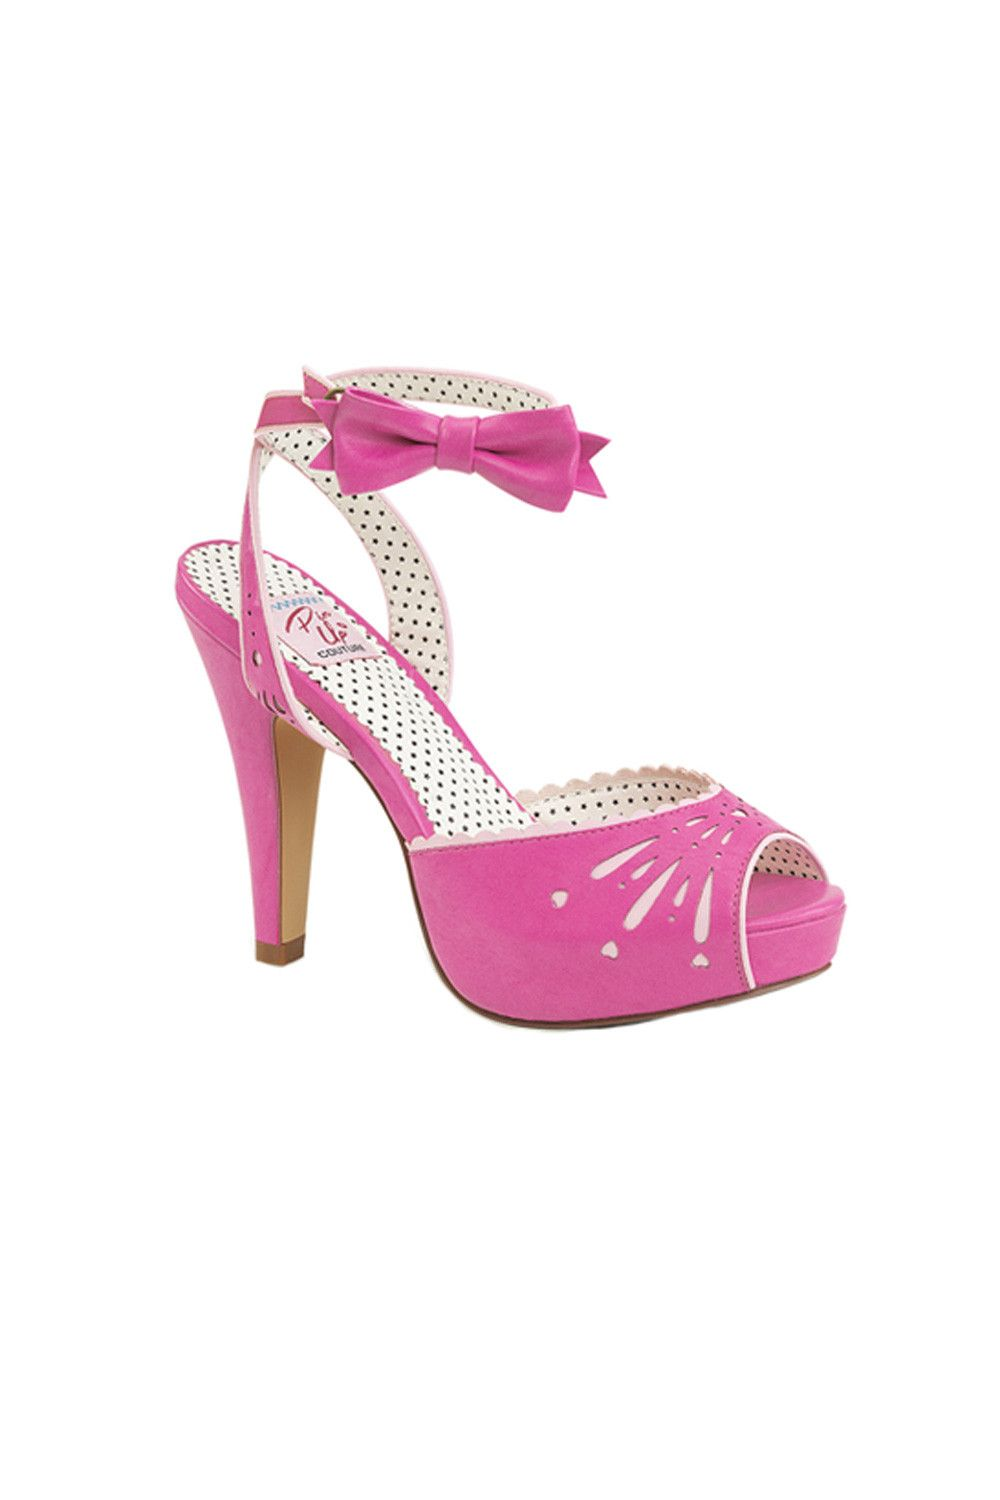 Bettie Peep Toe Wrap Wrap Wrap Around Ankle Strap Heel with Bow in Pink ... 4e65c7